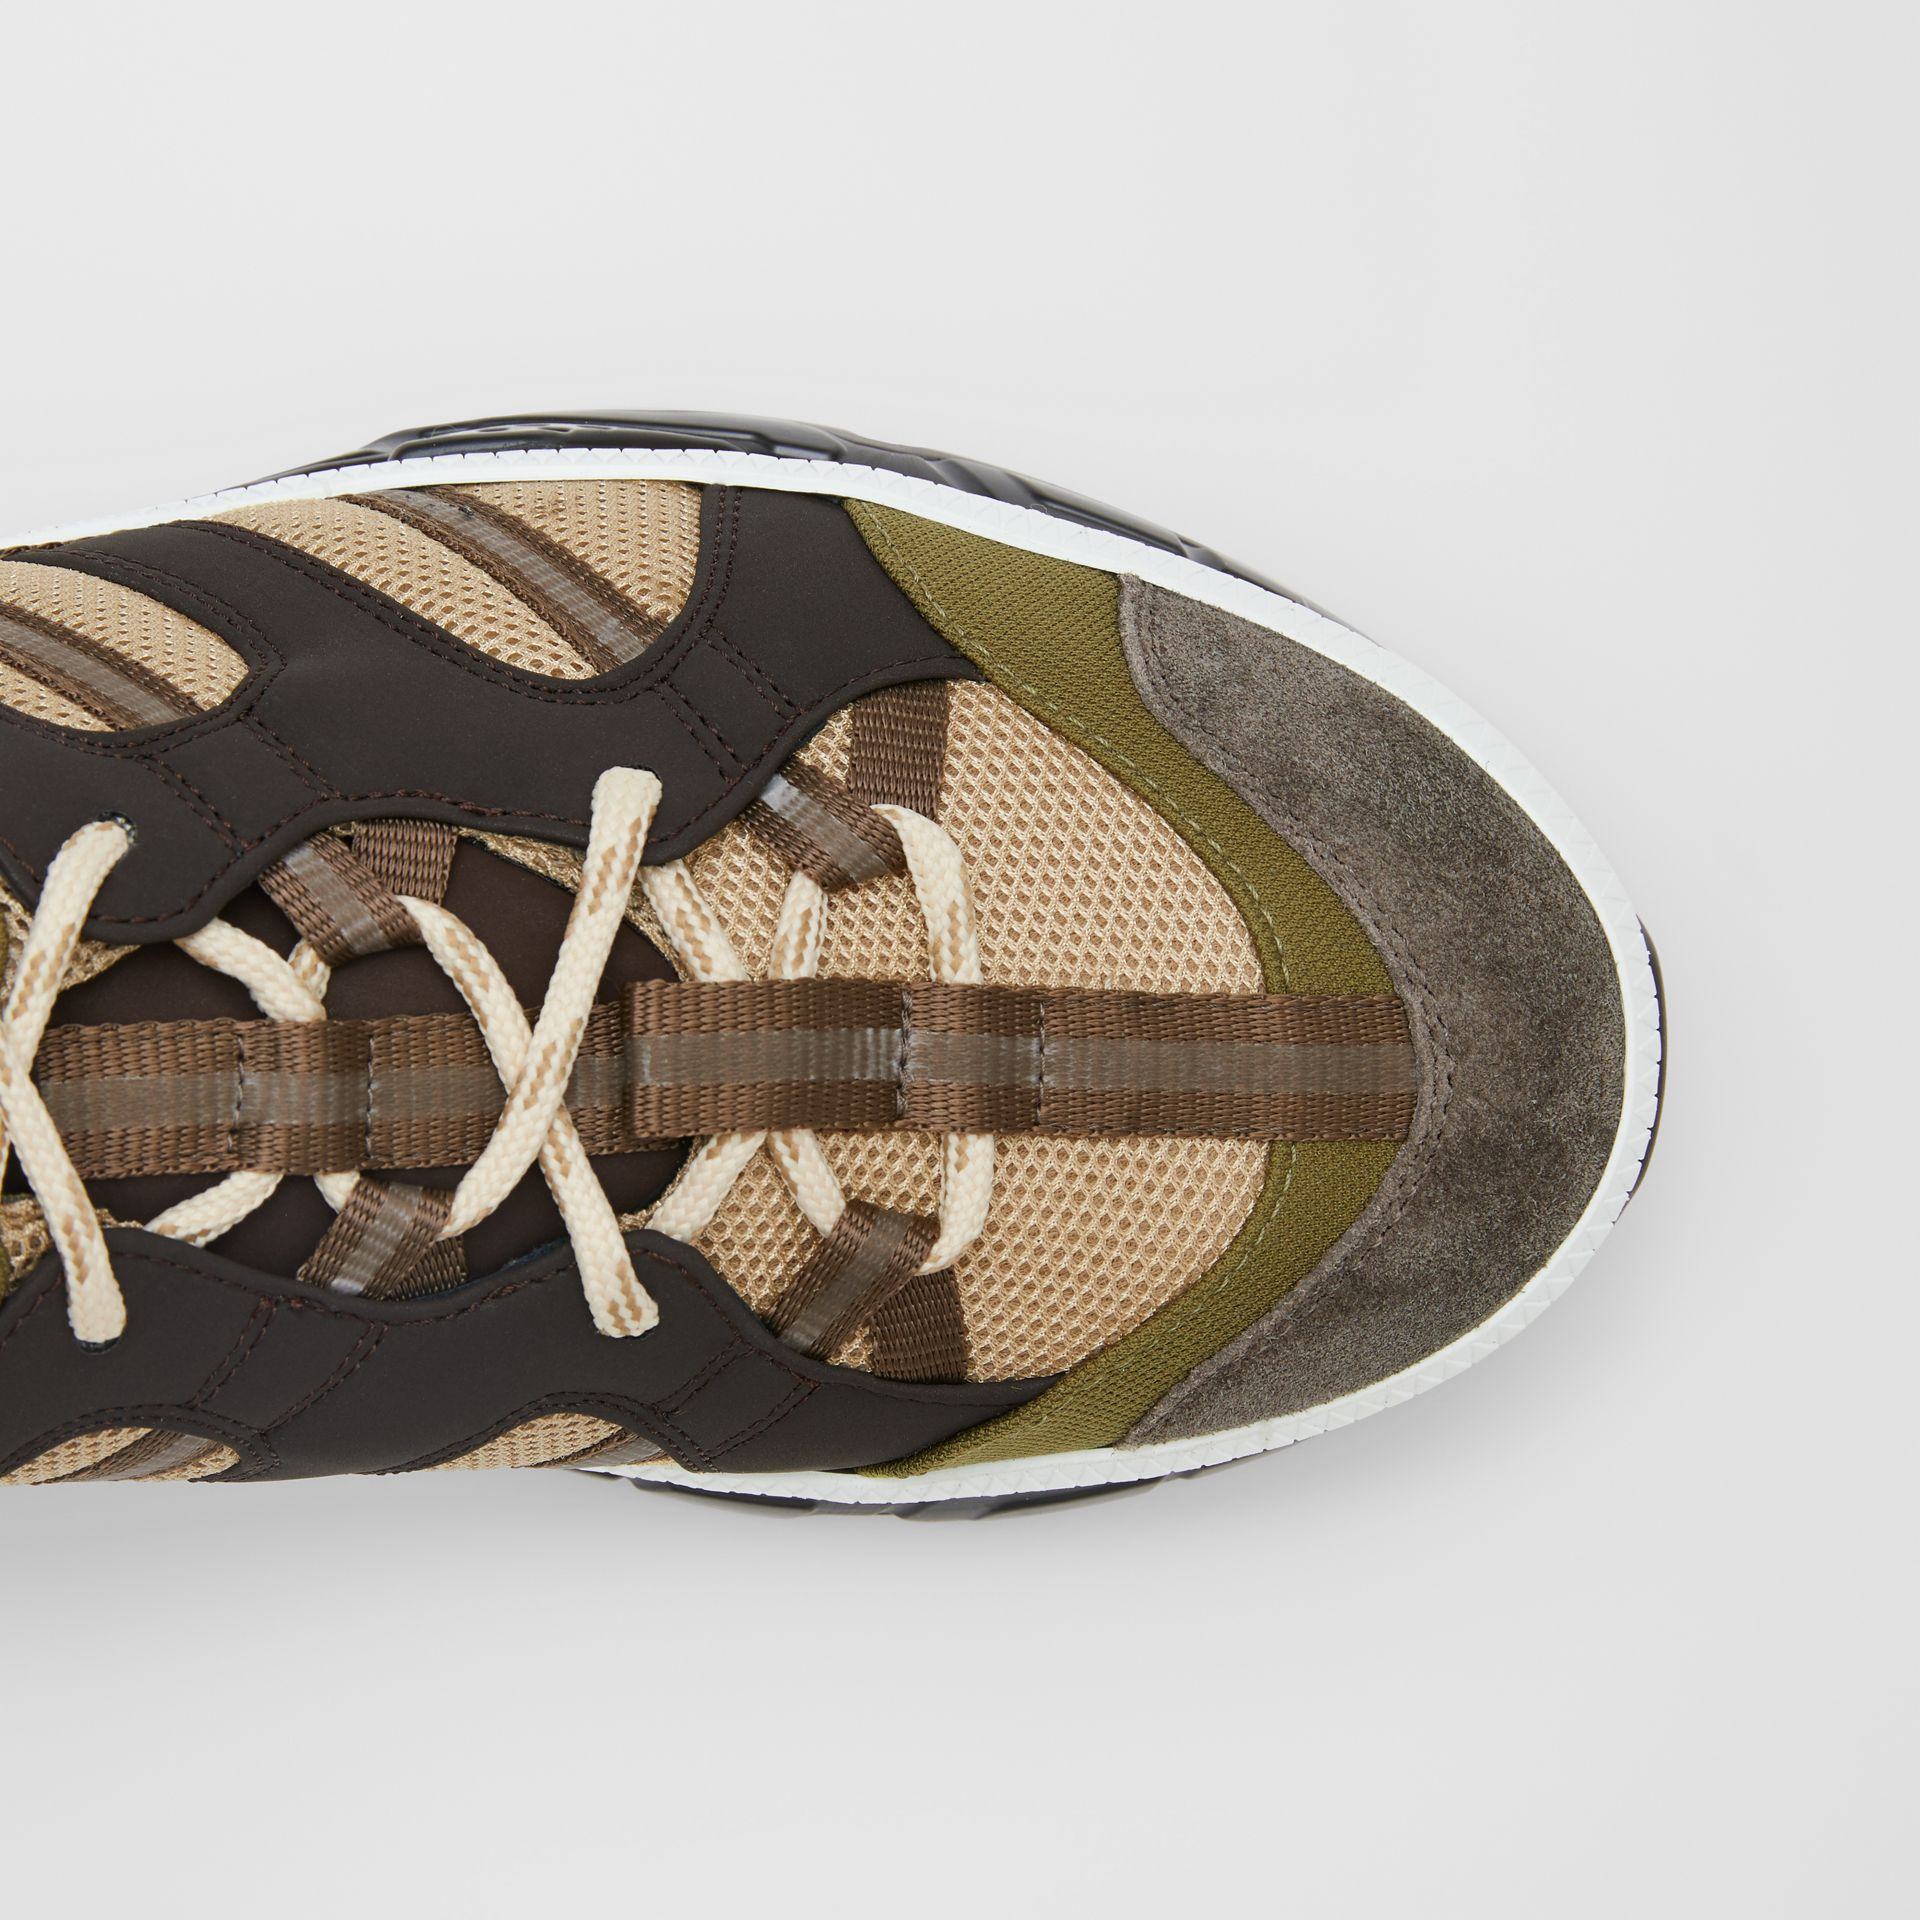 Mesh and Suede Union Sneakers in Khaki / Brown - Men | Burberry United States - gallery image 1